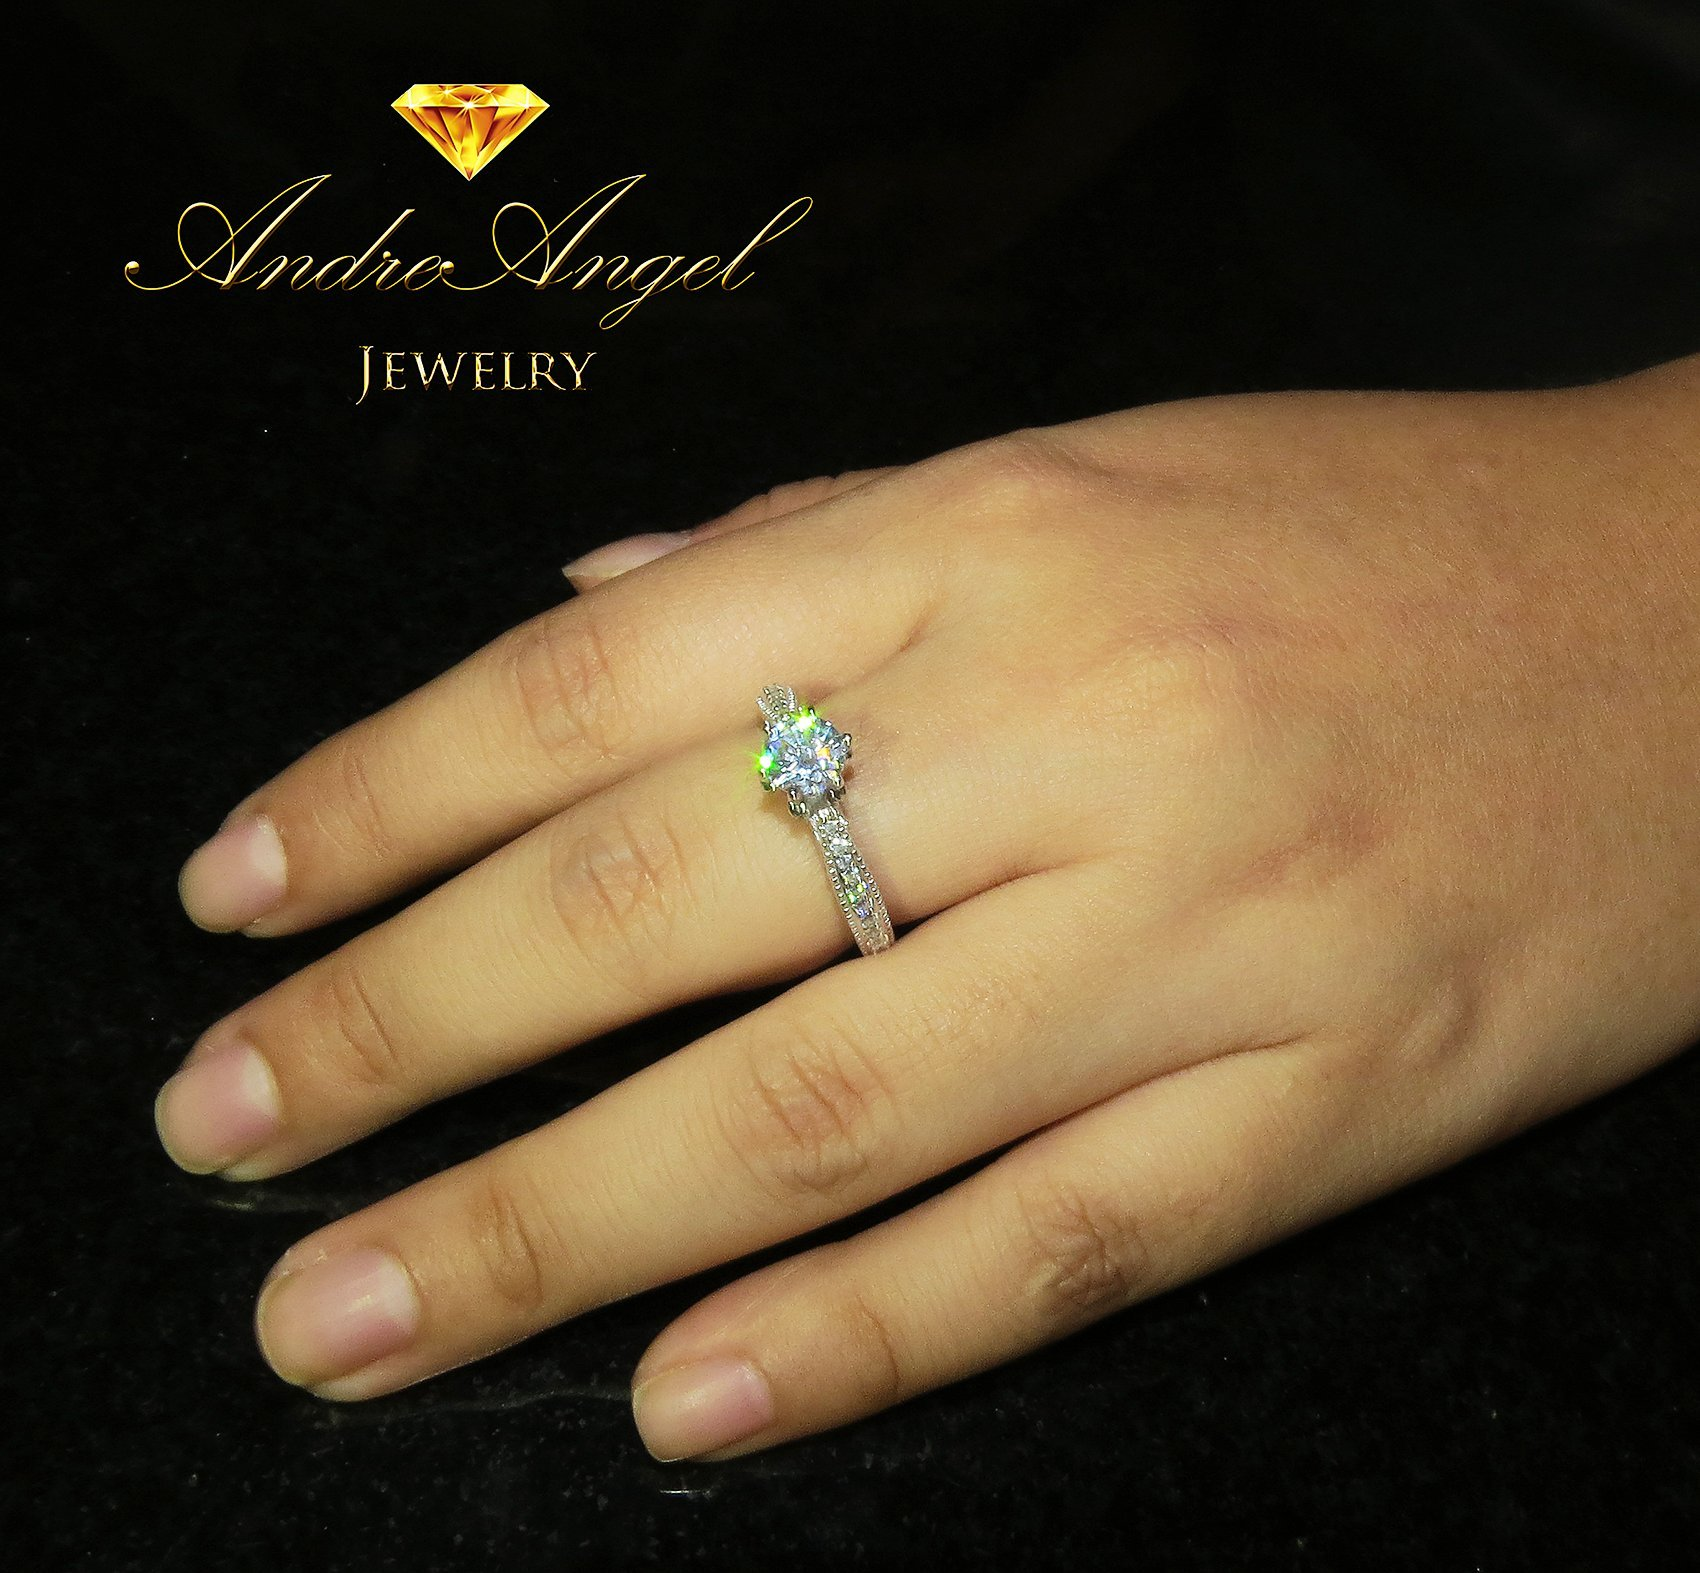 AndreAngel Women Ring White Gold 18K Princess Cut/Lab Diamond 6 mm Carat Cubic Zirconia AAA+/Bridal Birthday Dating Gift Anniversary Promise Engagement or Wedding Mother's Day (6) by AndreAngel (Image #5)